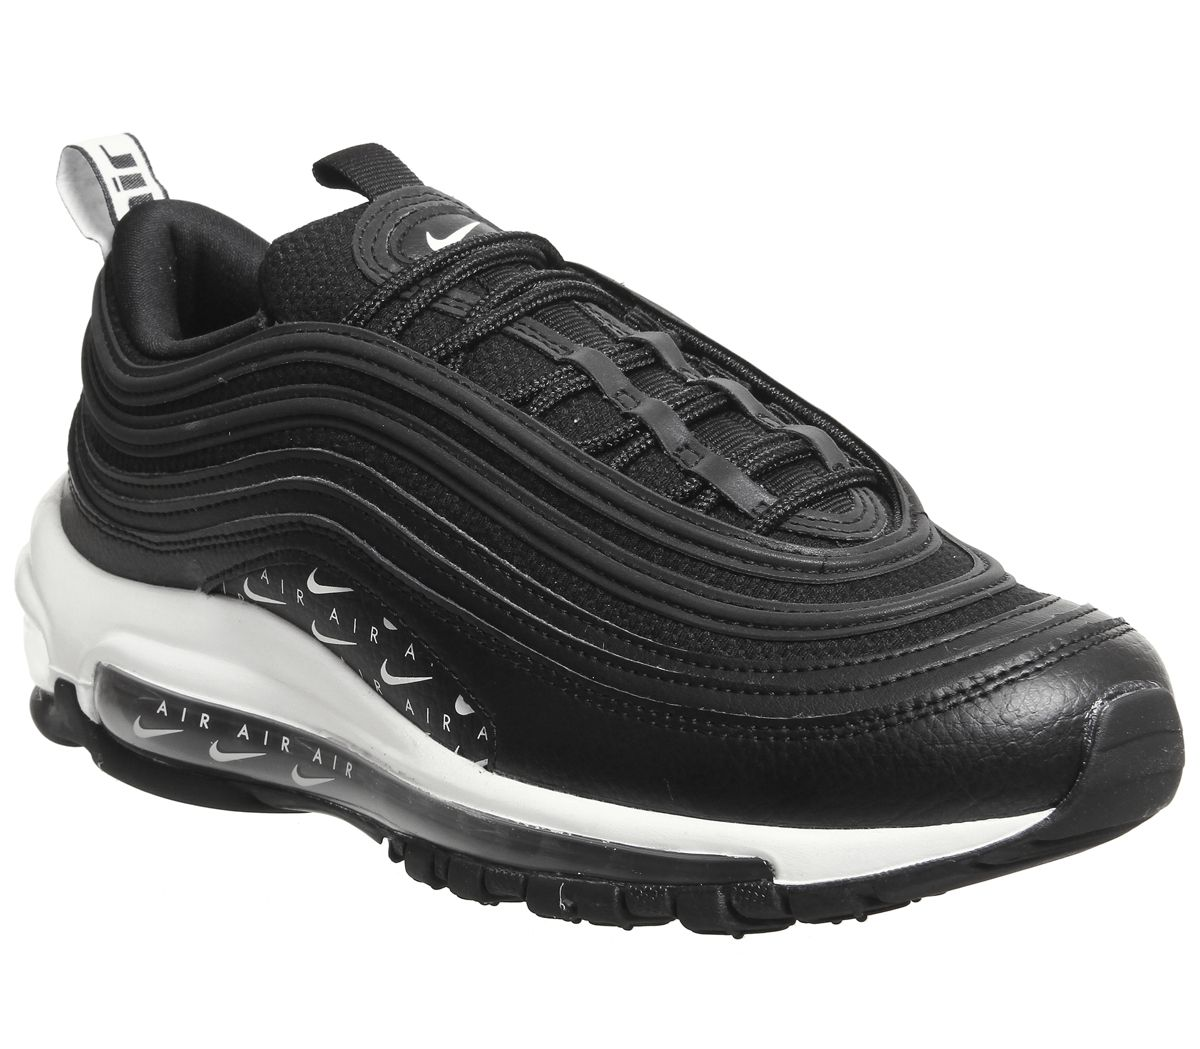 newest 5d952 21309 Nike Air Max 97 Trainers Black Black White Lx - Hers trainers